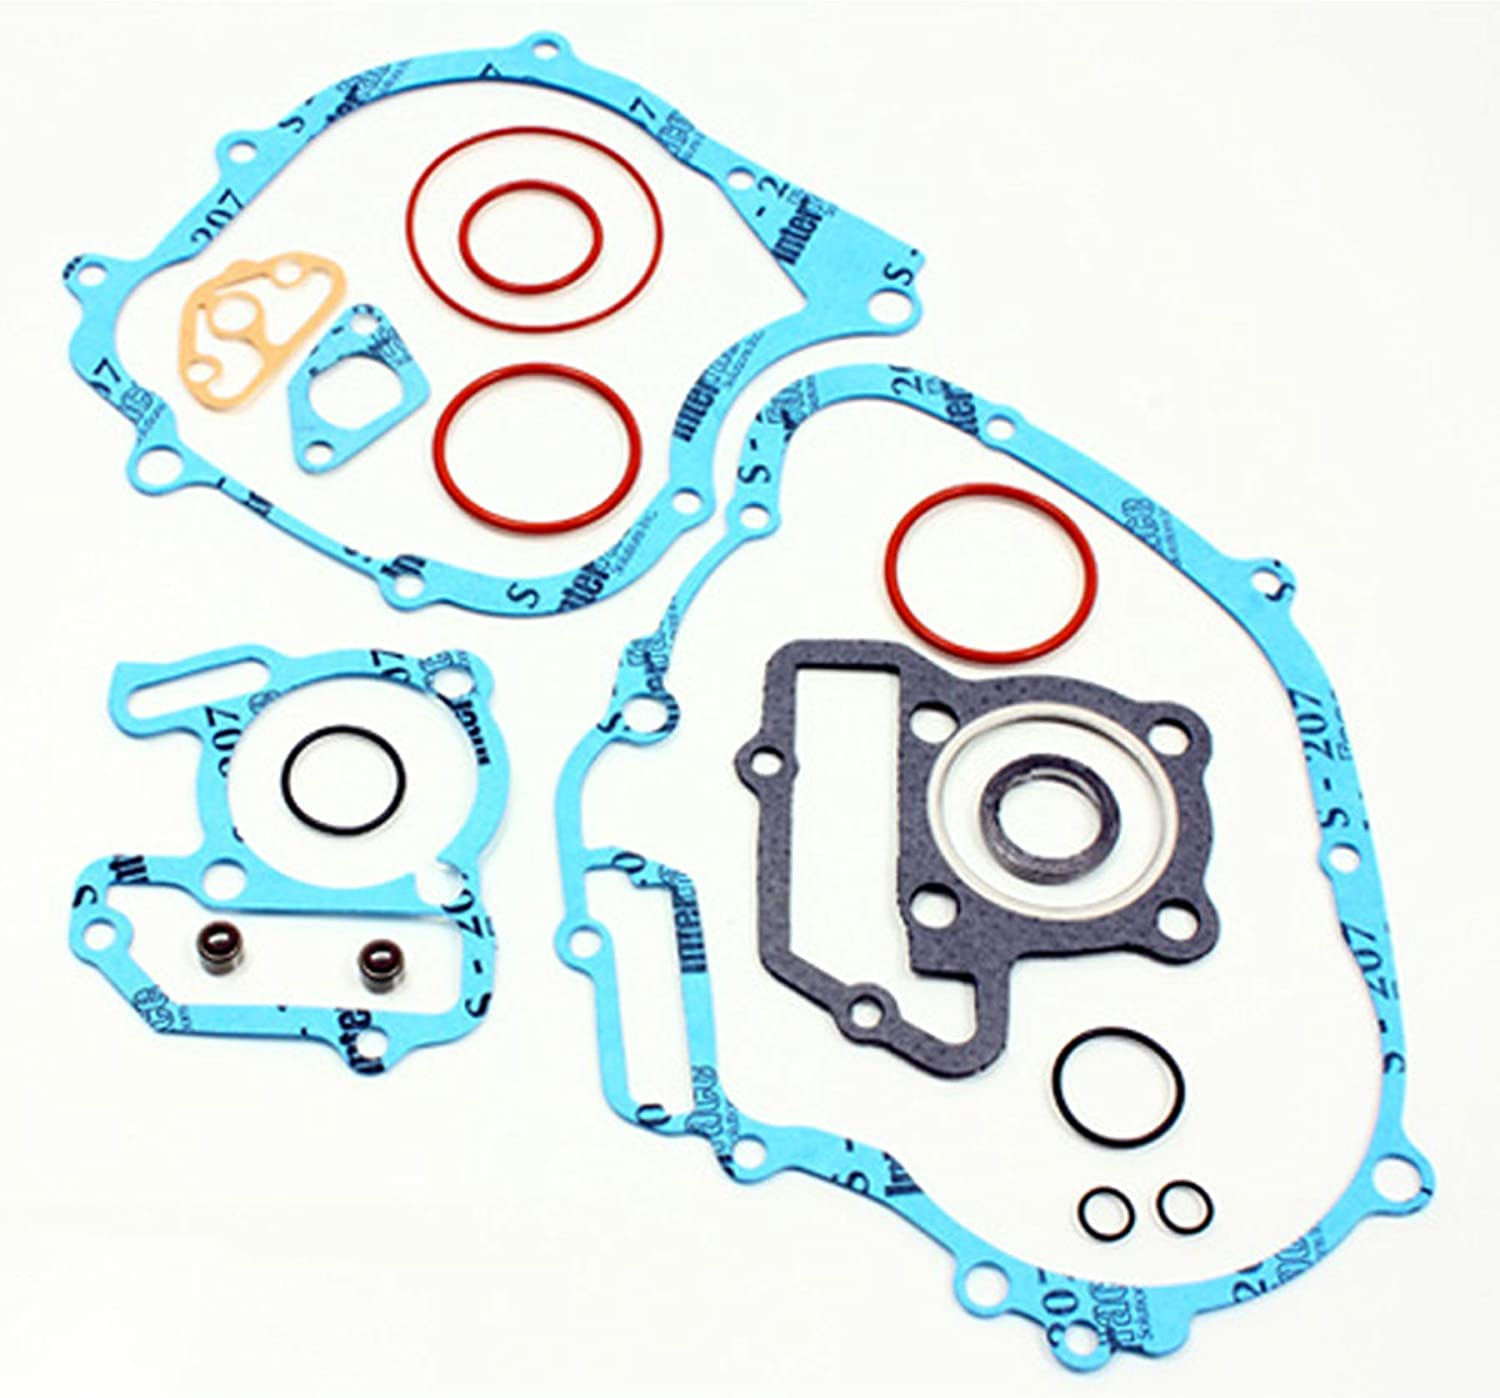 Complete Cheap sale Gasket Kit 2021 spring and summer new Fits Yamaha 2000-2003 TTR90